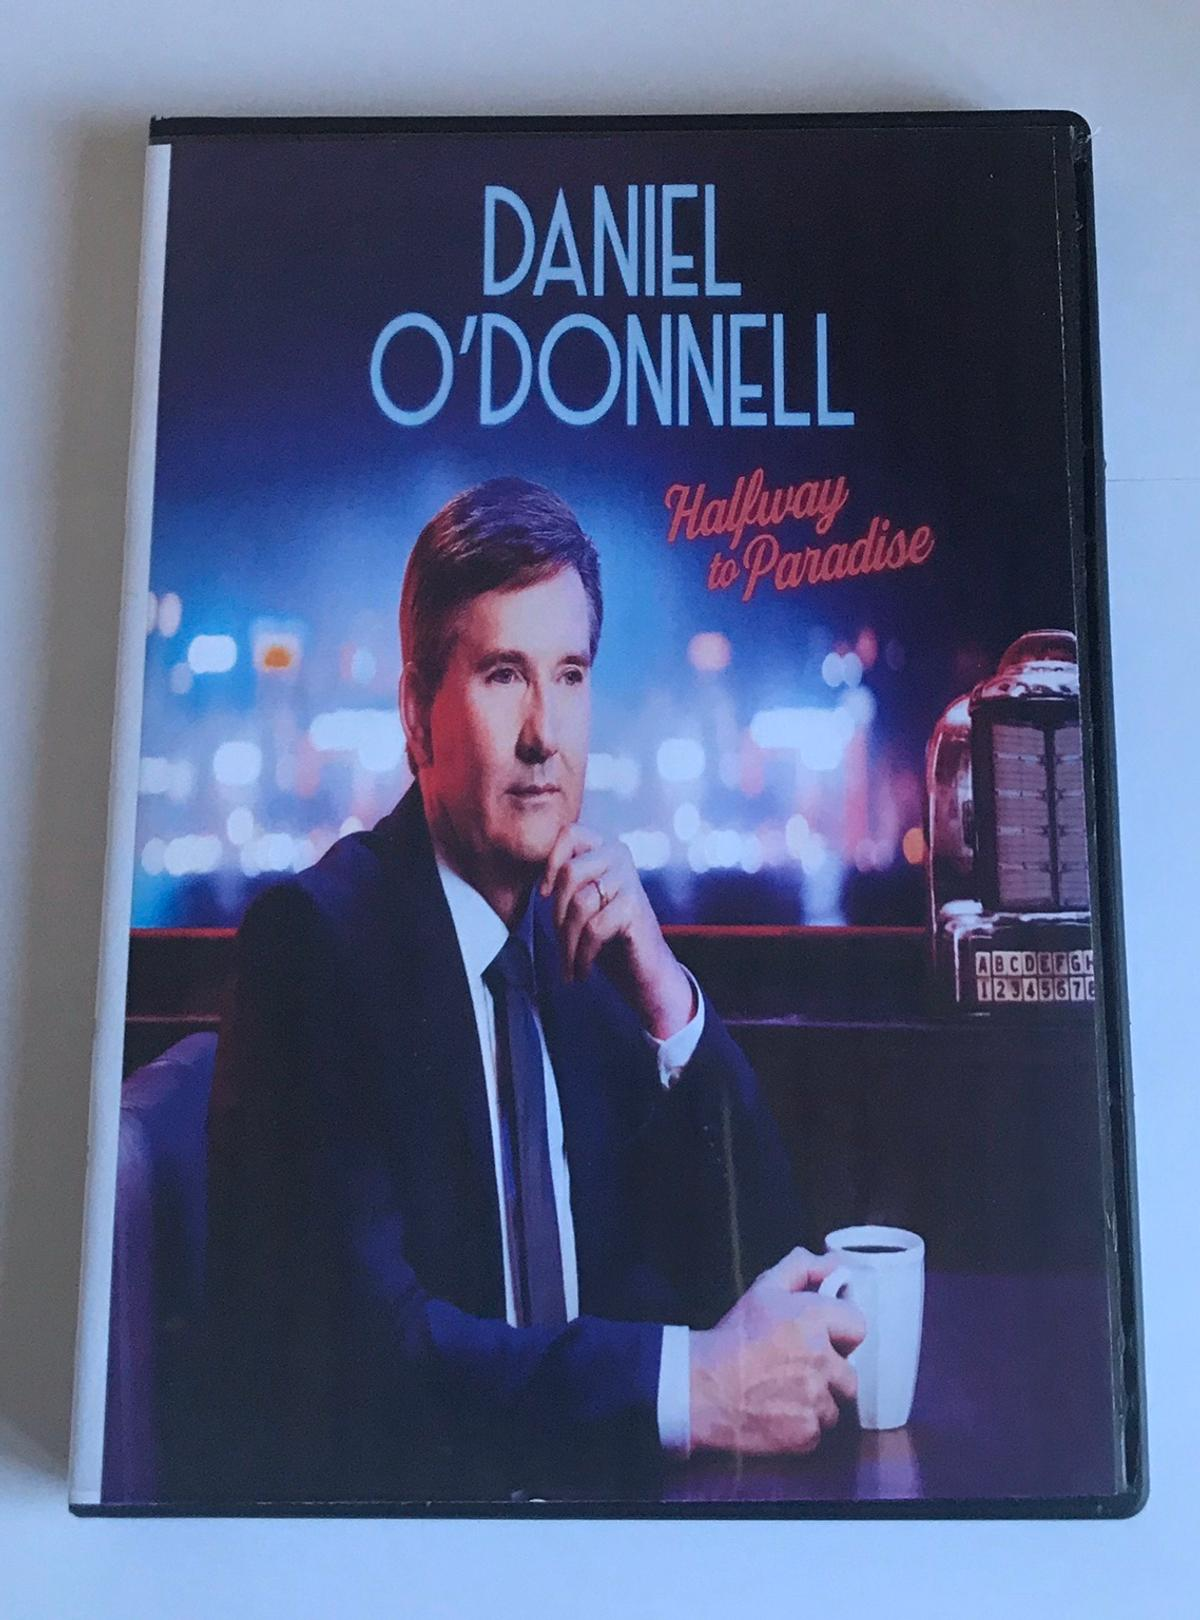 Daniel o'donnell halfway to paradise 3xcd box set Postage available